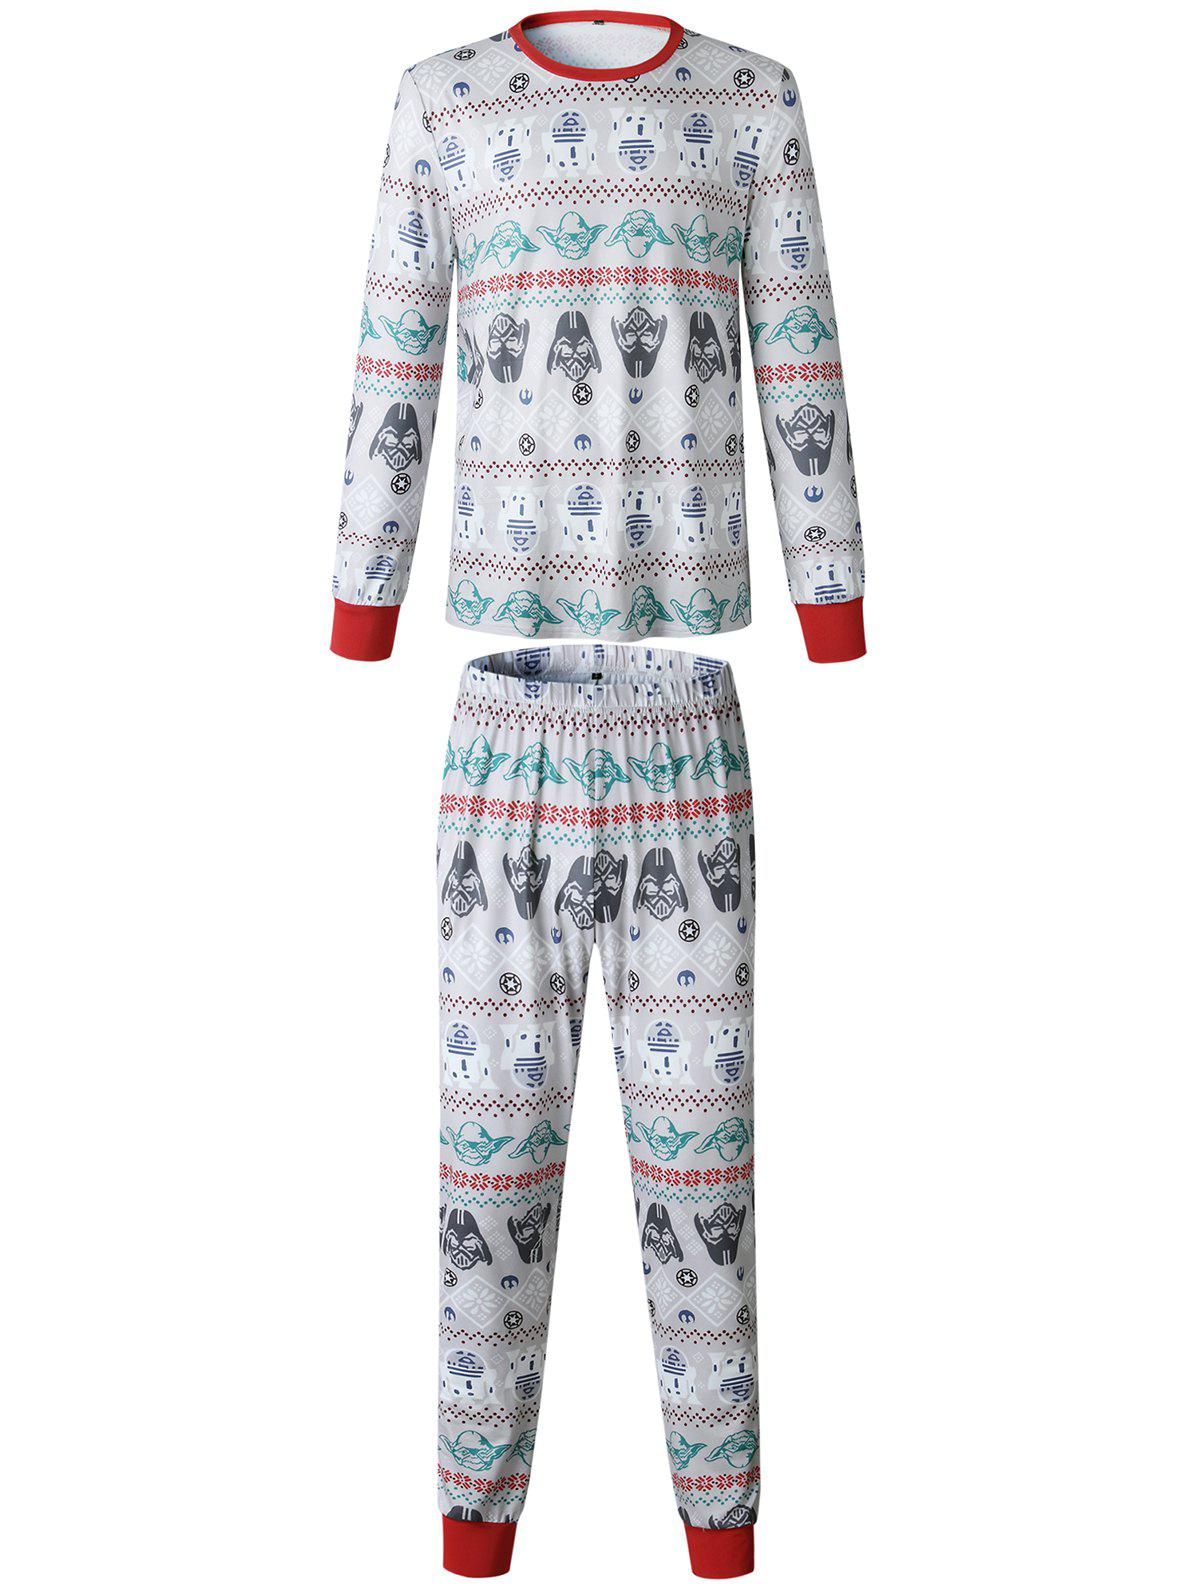 Affordable Christmas  Family Pajama Long Sleeves Casual  Print  Sets Parent-Child Home Suit Pyjamas